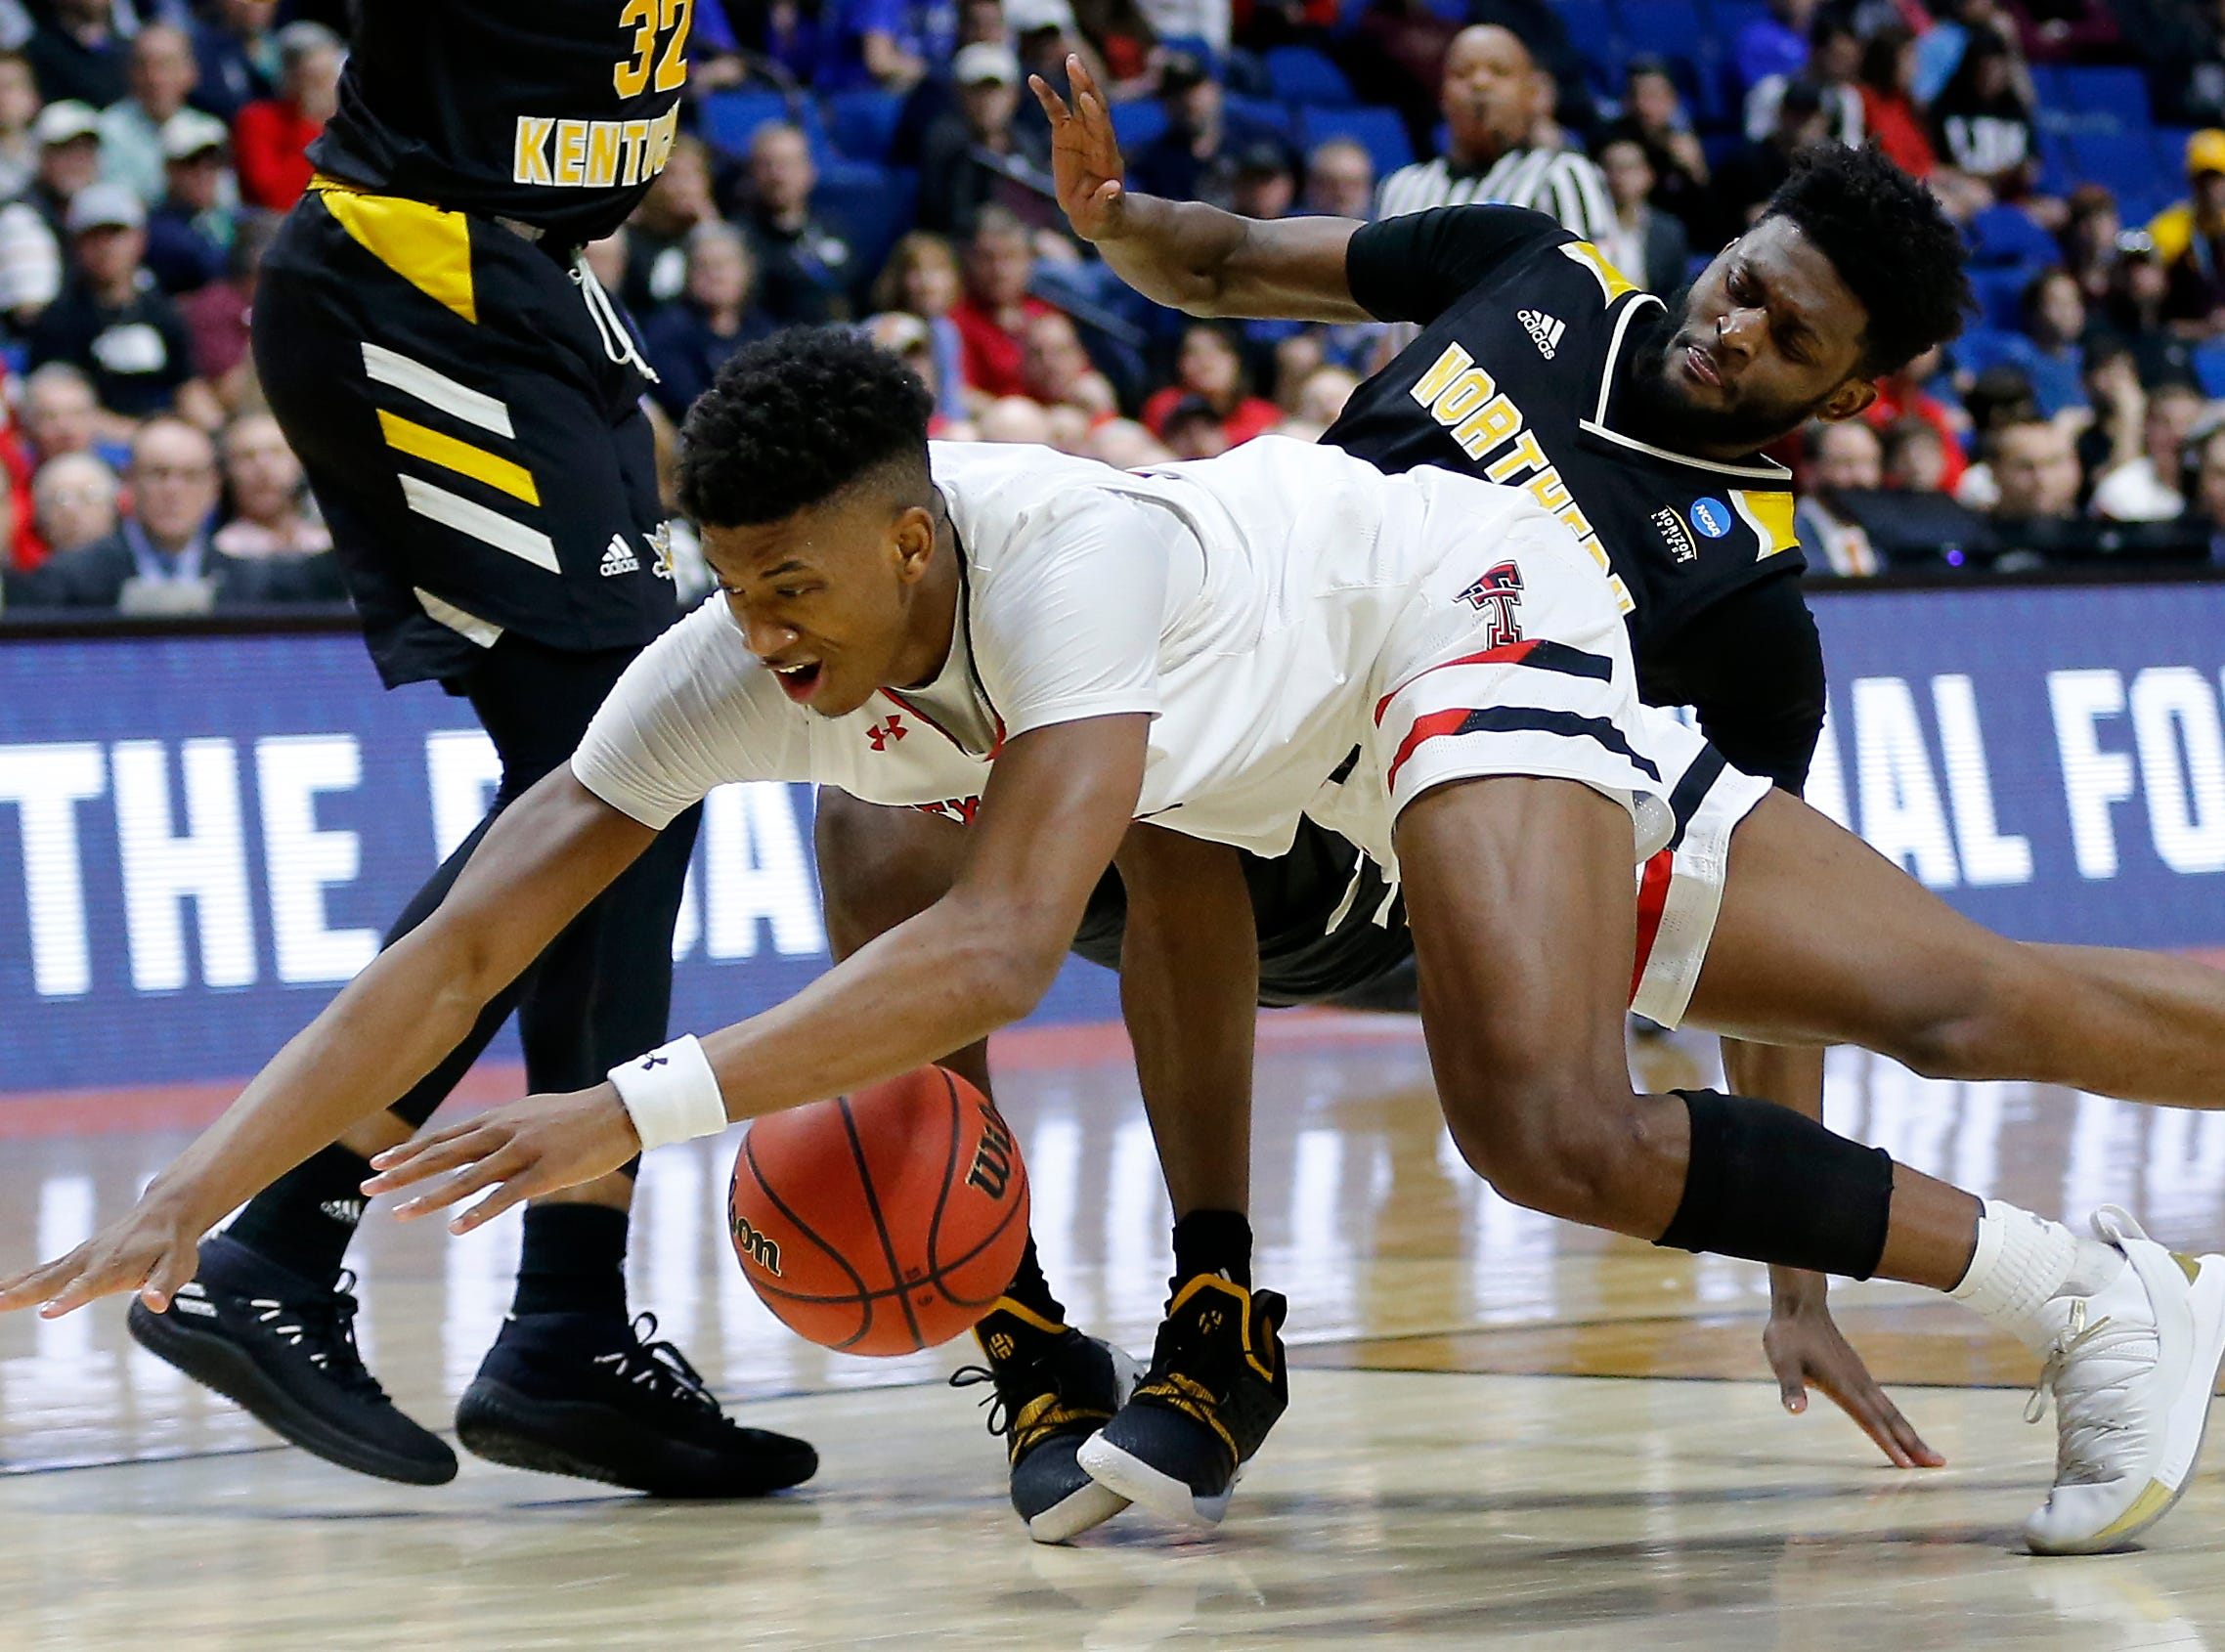 Texas Tech Red Raiders guard Jarrett Culver (23) and Northern Kentucky Norse guard Trevon Faulkner (12) collide over a loose ball in the second half of the NCAA Tournament First Round game between the 14-seeded Northern Kentucky Norse and the 3-seeded Texas Tech Red Raiders the BOK Center in downtown Tulsa on Friday, March 22, 2019. NKU was knocked from the tournament with a 72-57 loss to the Red Raiders.